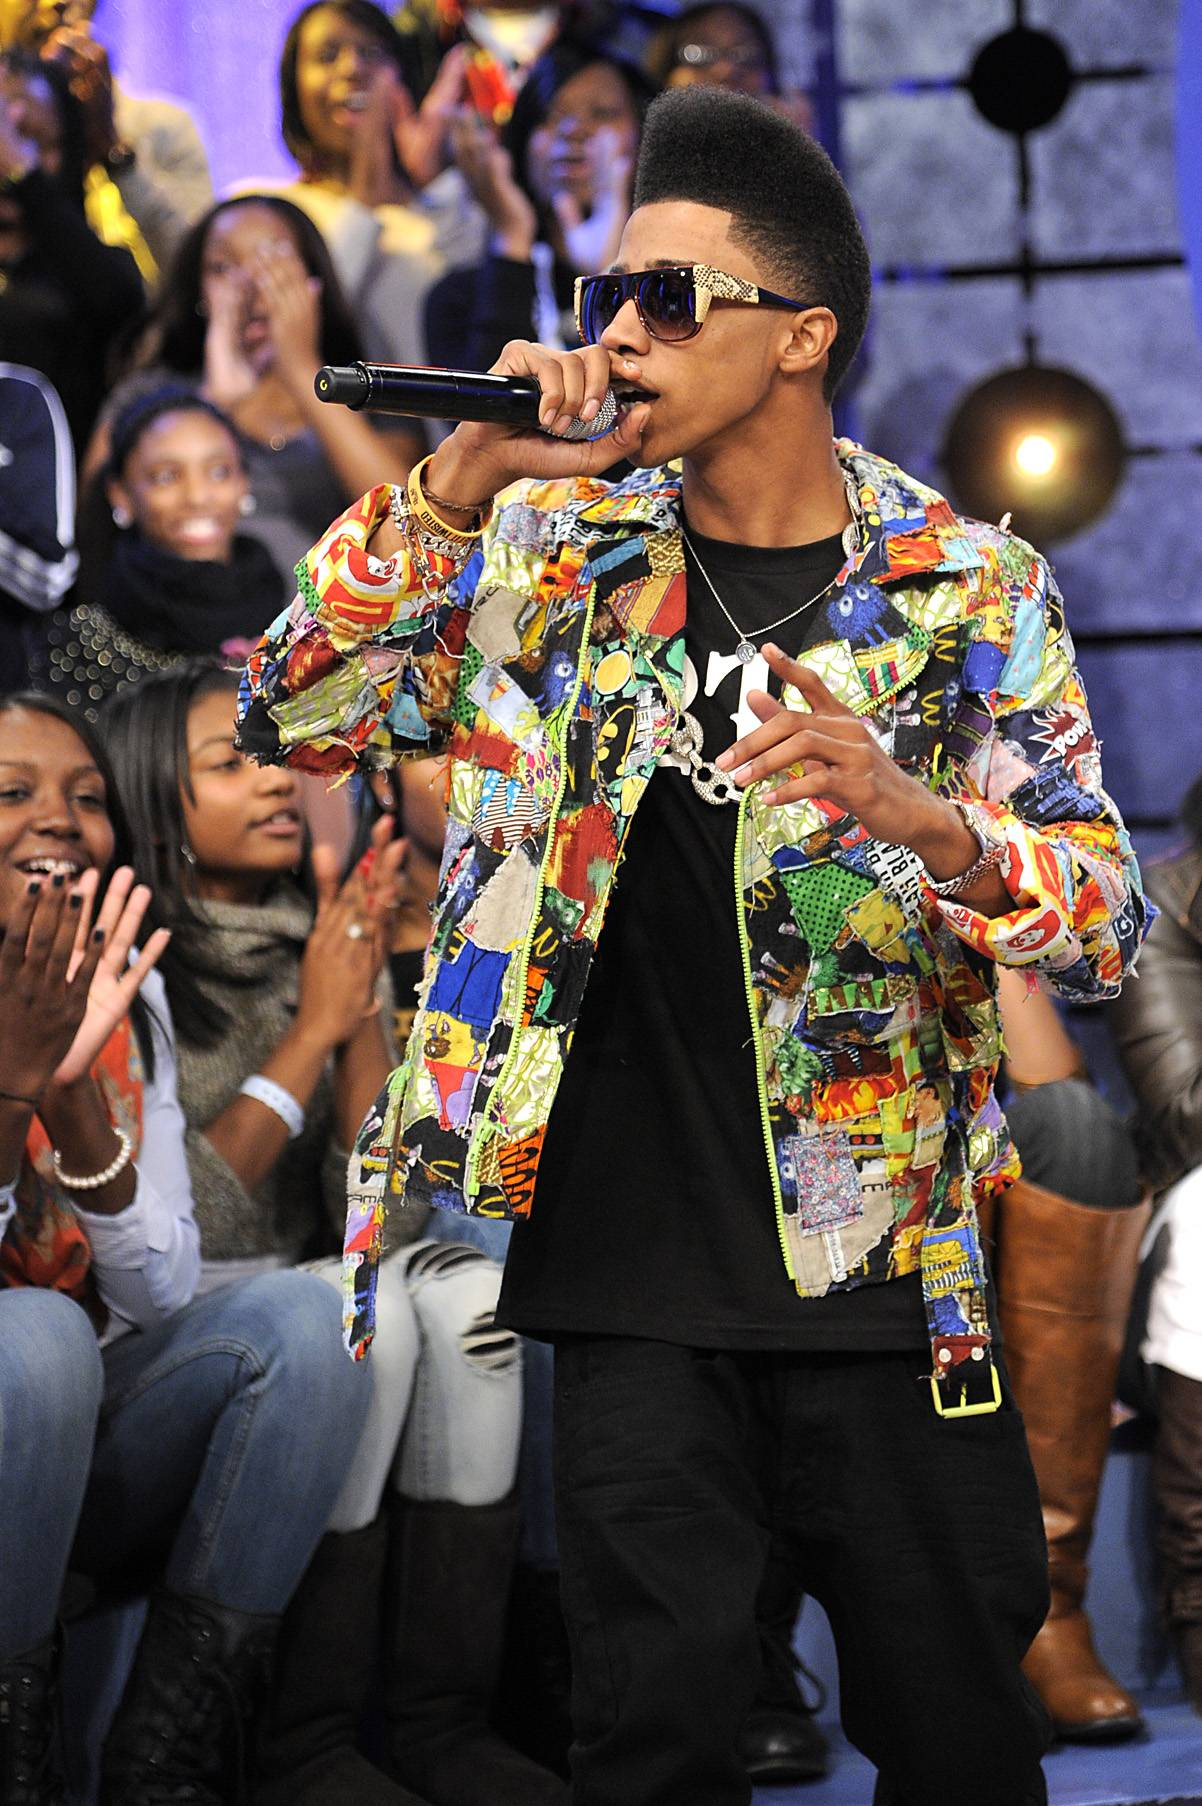 Shout Out - Lil Twist at 106 & Park, January 05, 2012.(Photo: John Ricard/BET)